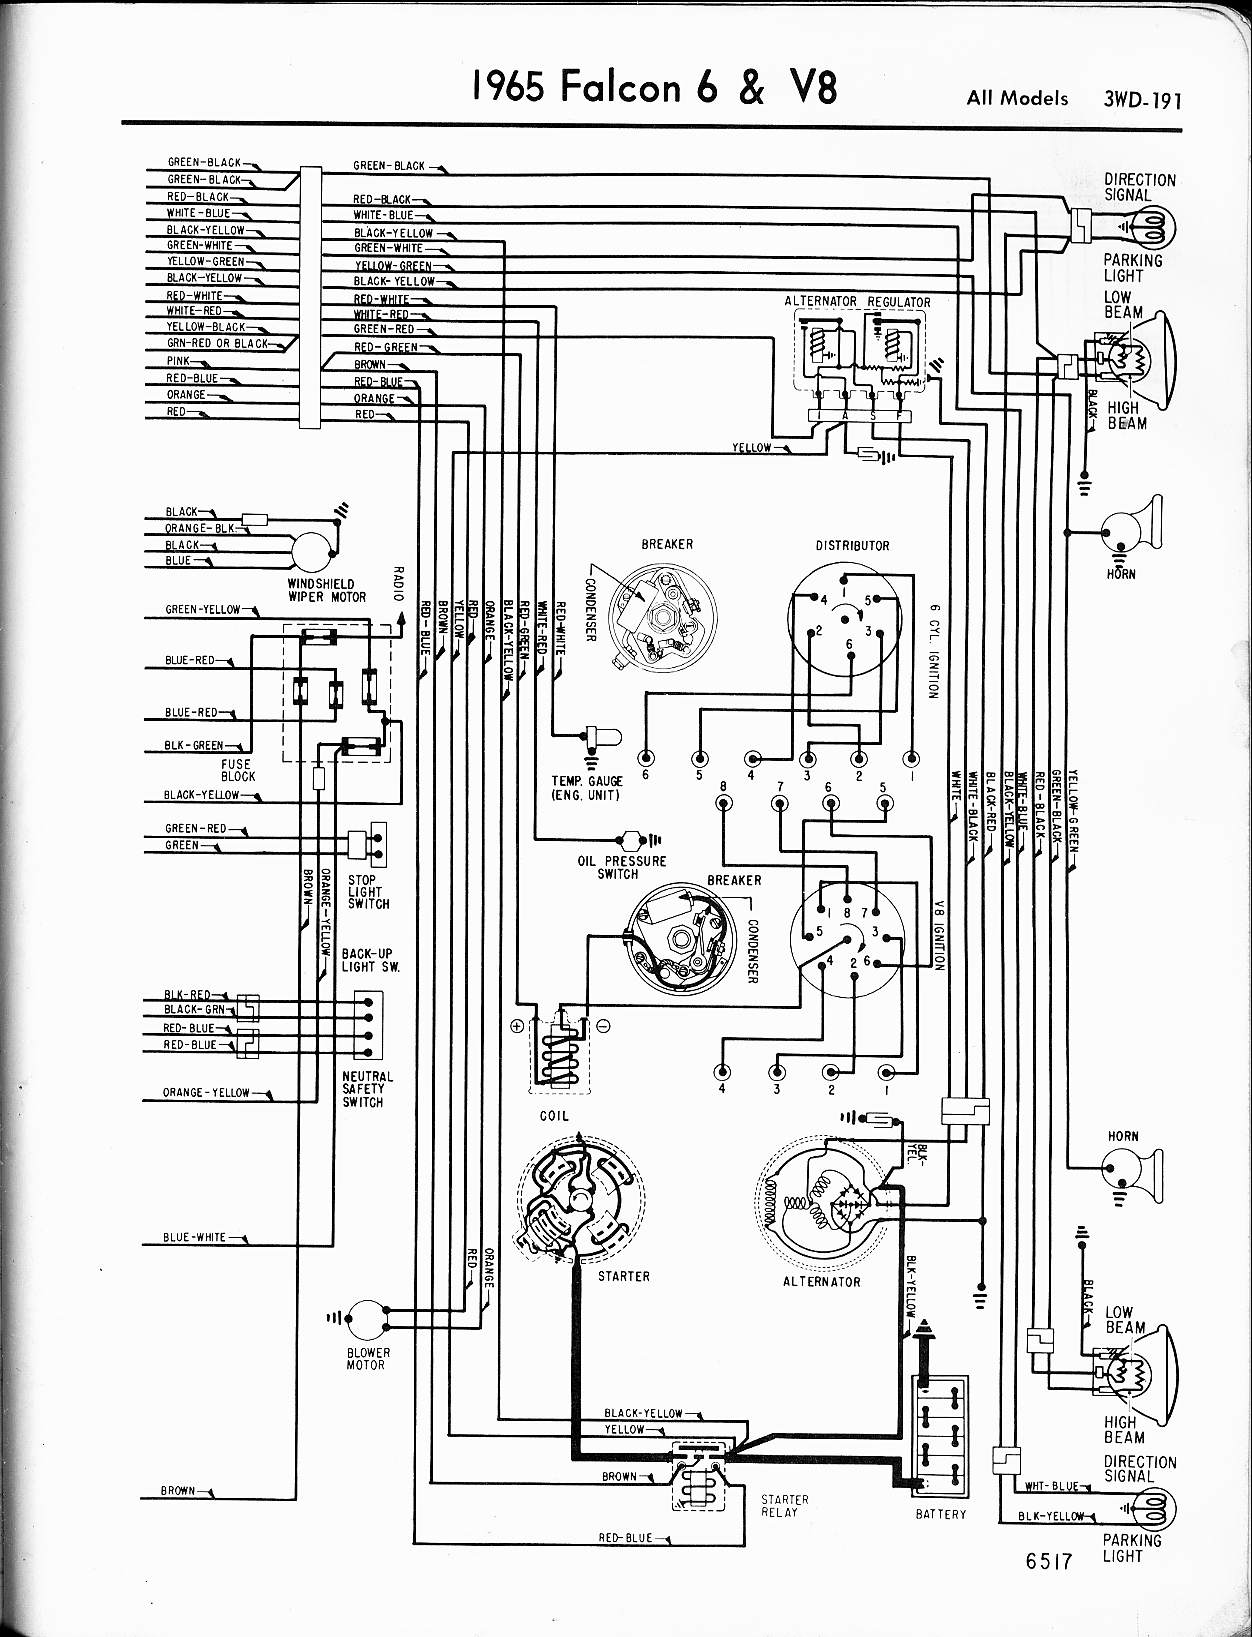 57 65 Ford Wiring Diagrams 1958 Ranchero Diagram 1965 6 V8 Falcon Right